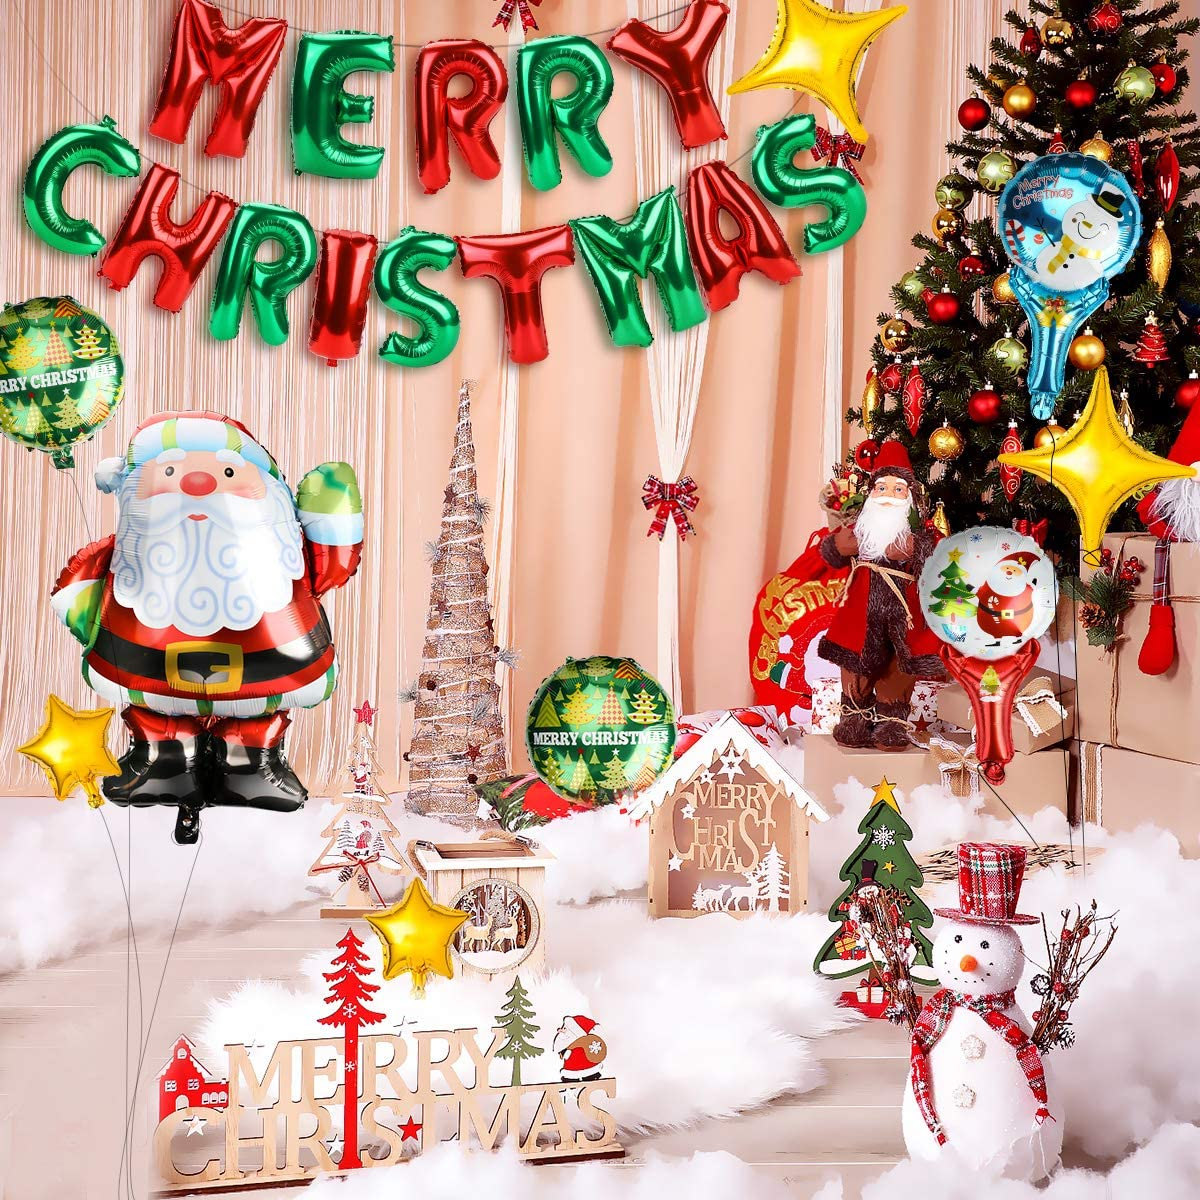 Ertisa Foil Balloons Pack Set of 25 Merry Christmas Foil Balloons Christmas Party Banner Decoration with Letter Balloons Santa Claus Balloons Christmas Party Supplies